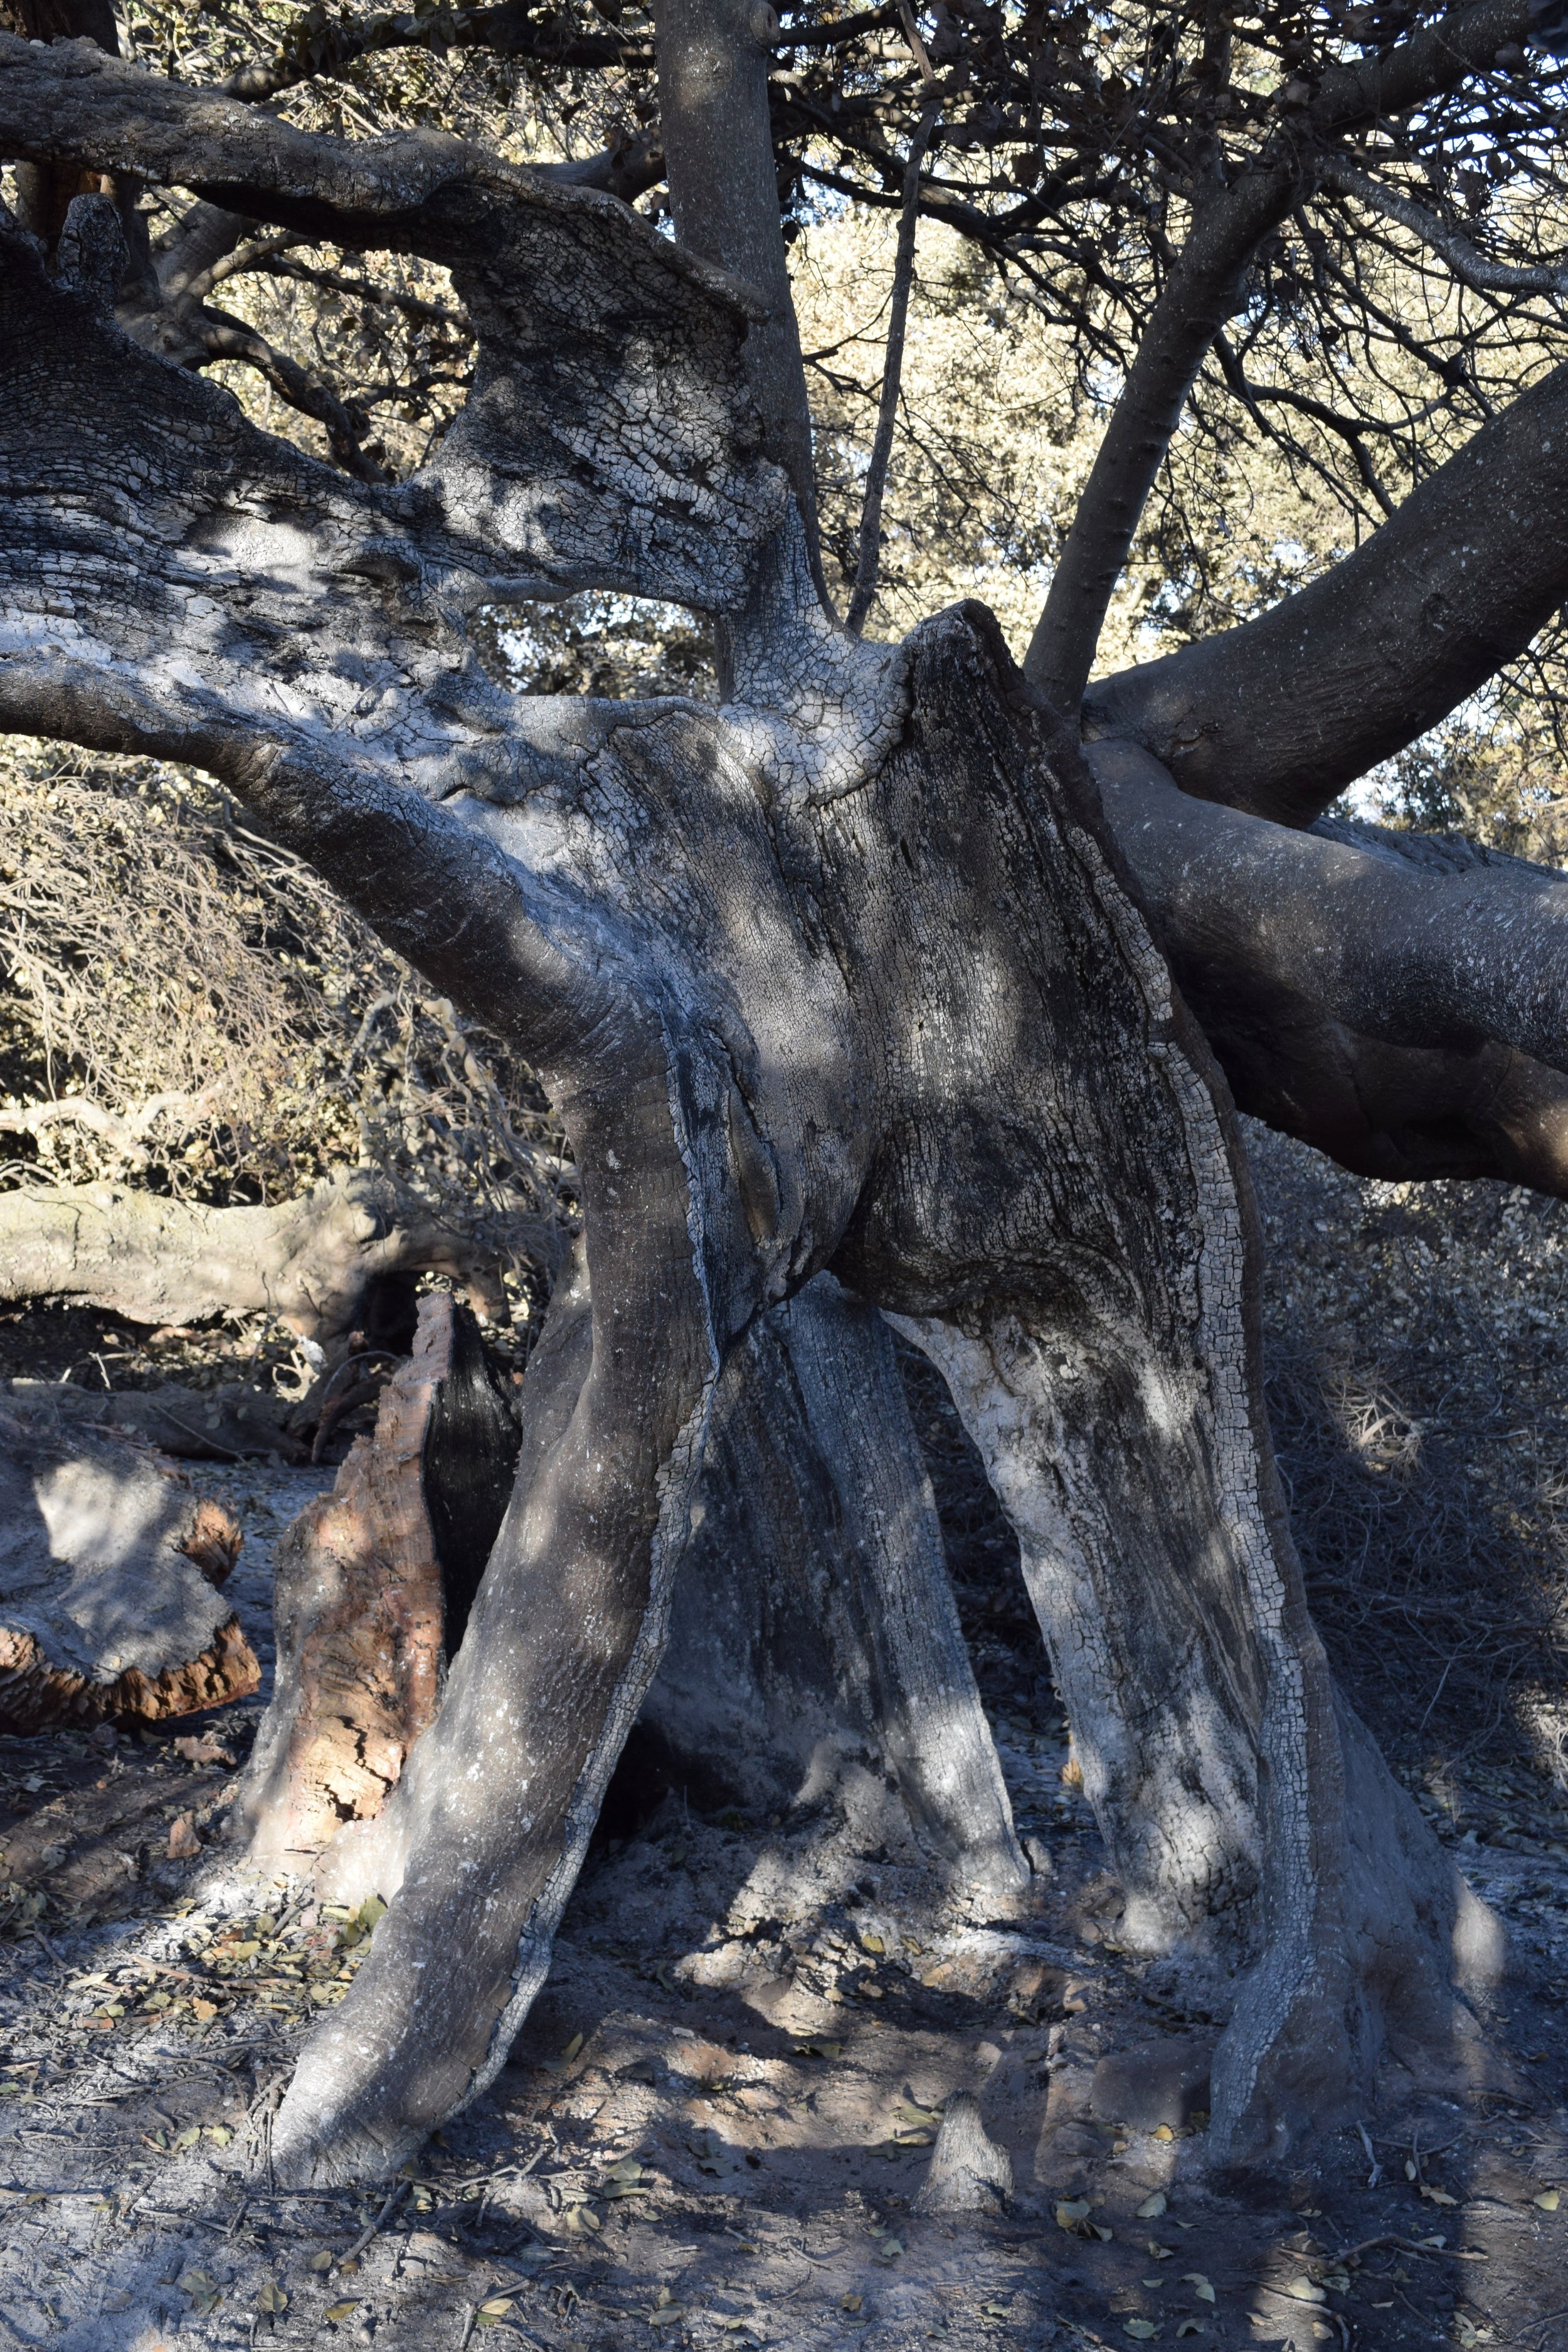 BABA'S TREE after the 2017 Thomas Fire struck Meher Mount. There are broken and detached limbs, but part of the main trunk, that was badly burned in 1985, is still standing. (Photo: Eric Turk, December 2017)